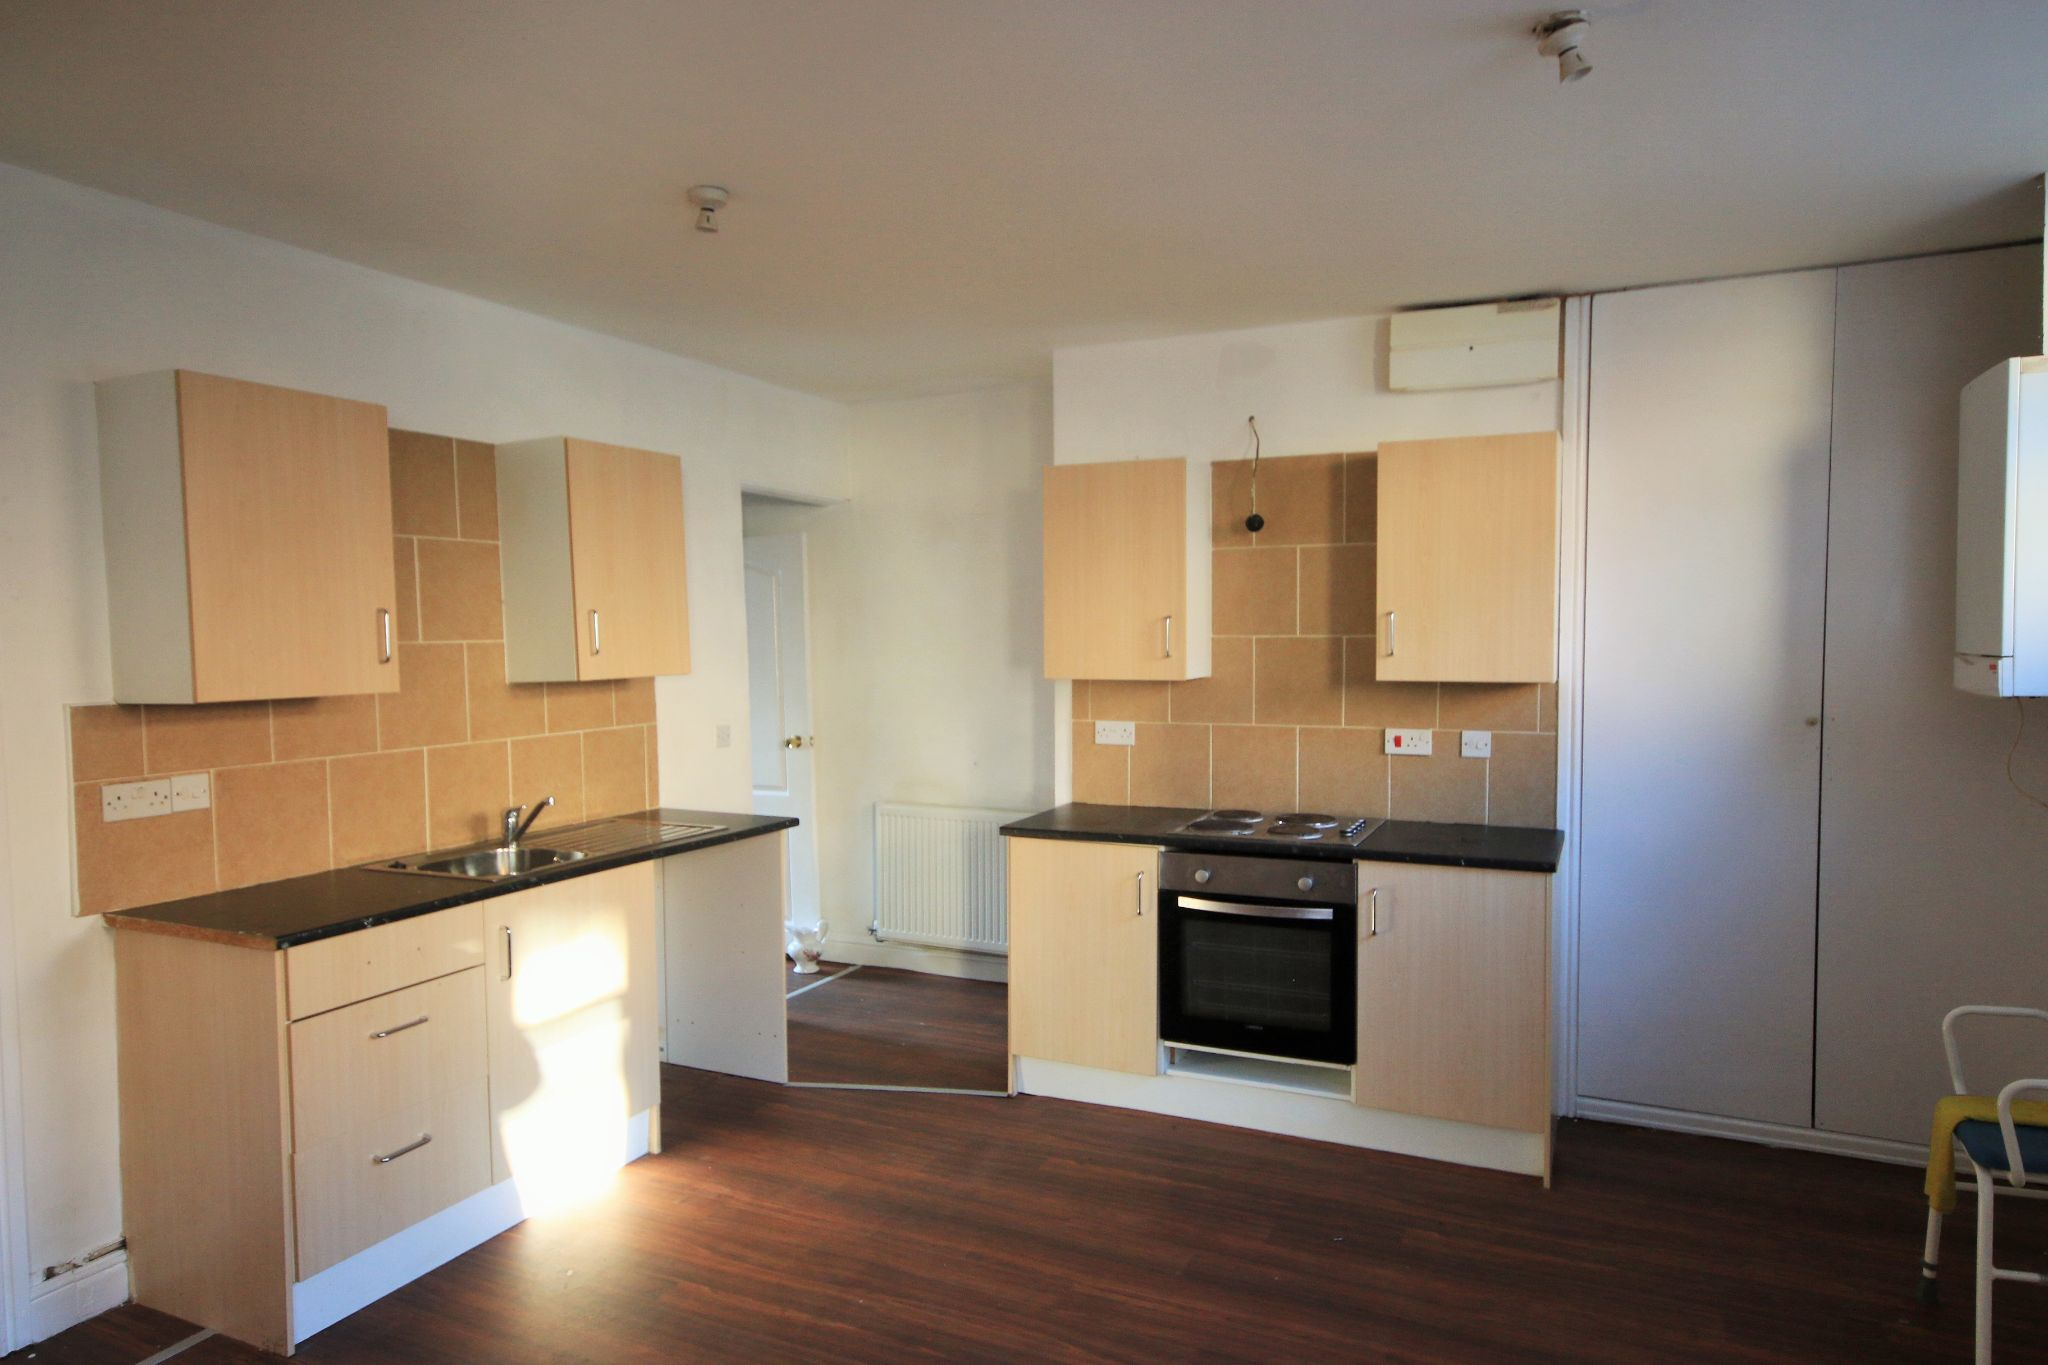 1 Bedroom End Terraced House To Rent - Photograph 3